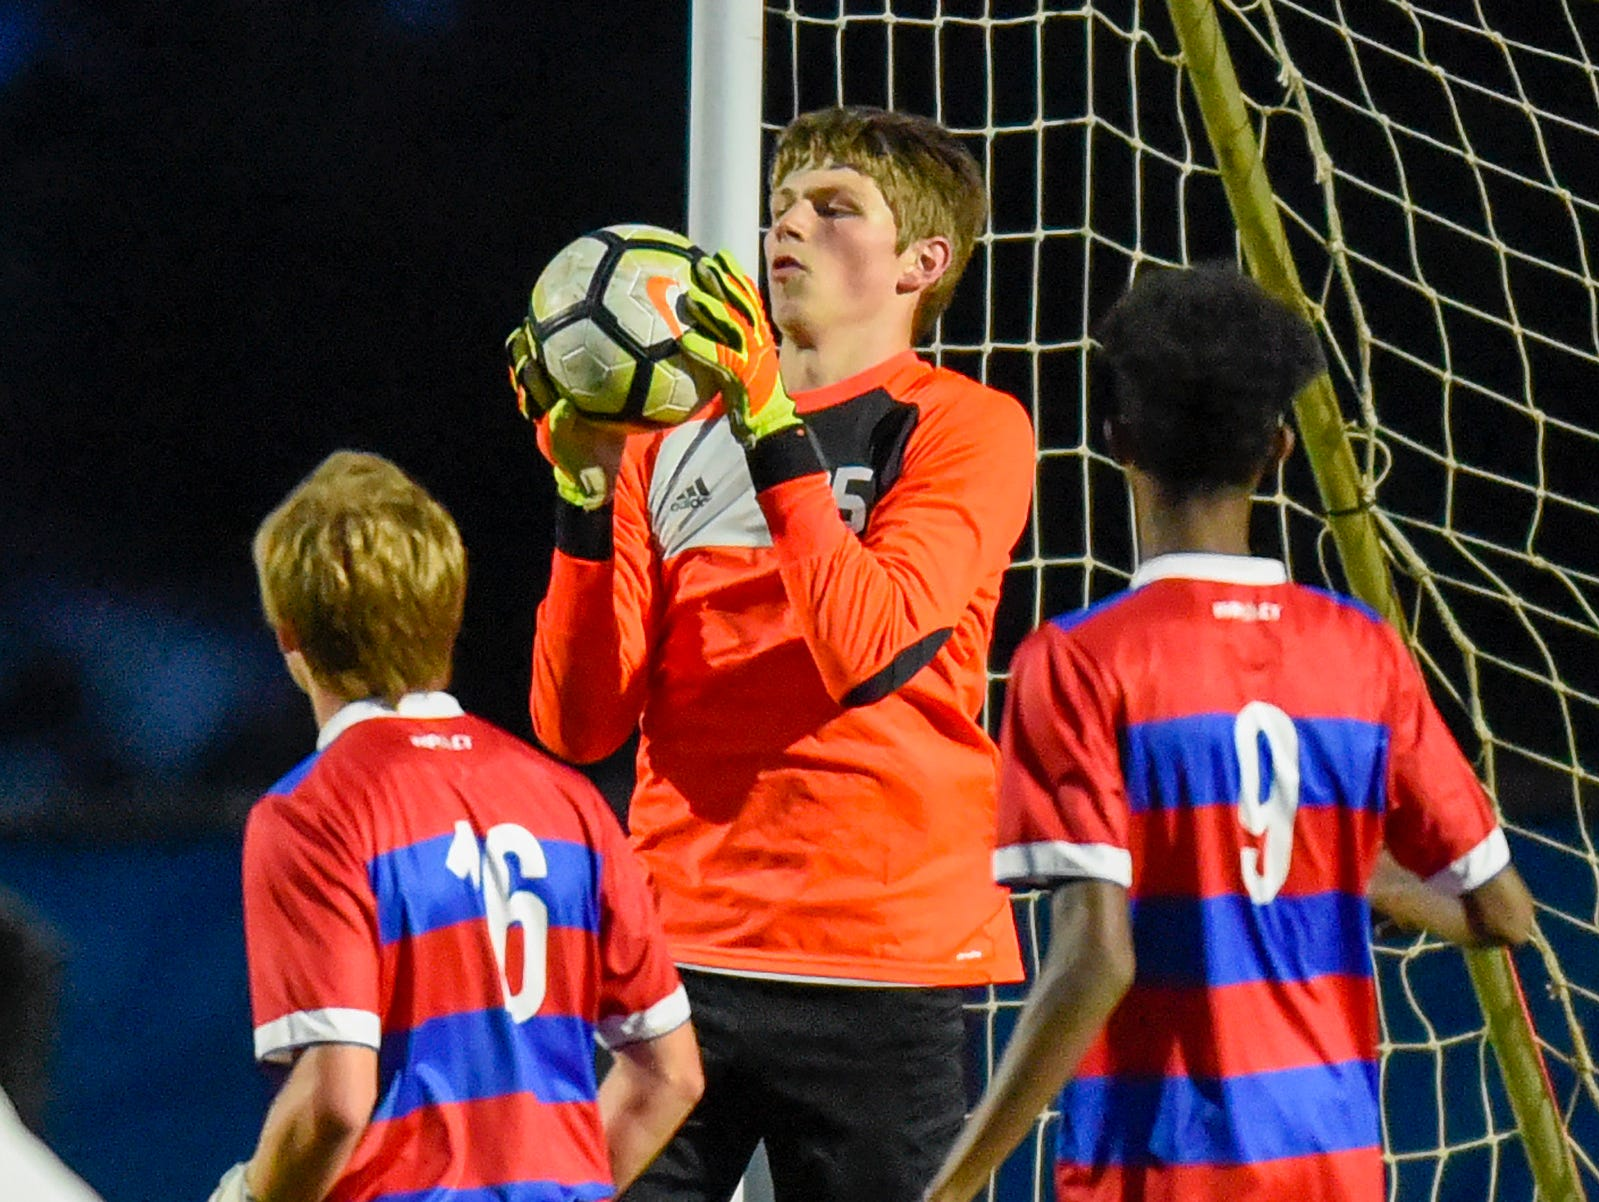 Apollo goalie Zach Schiltz makes a save against Tech during the first half Thursday, Sept. 27, at Apollo High School.